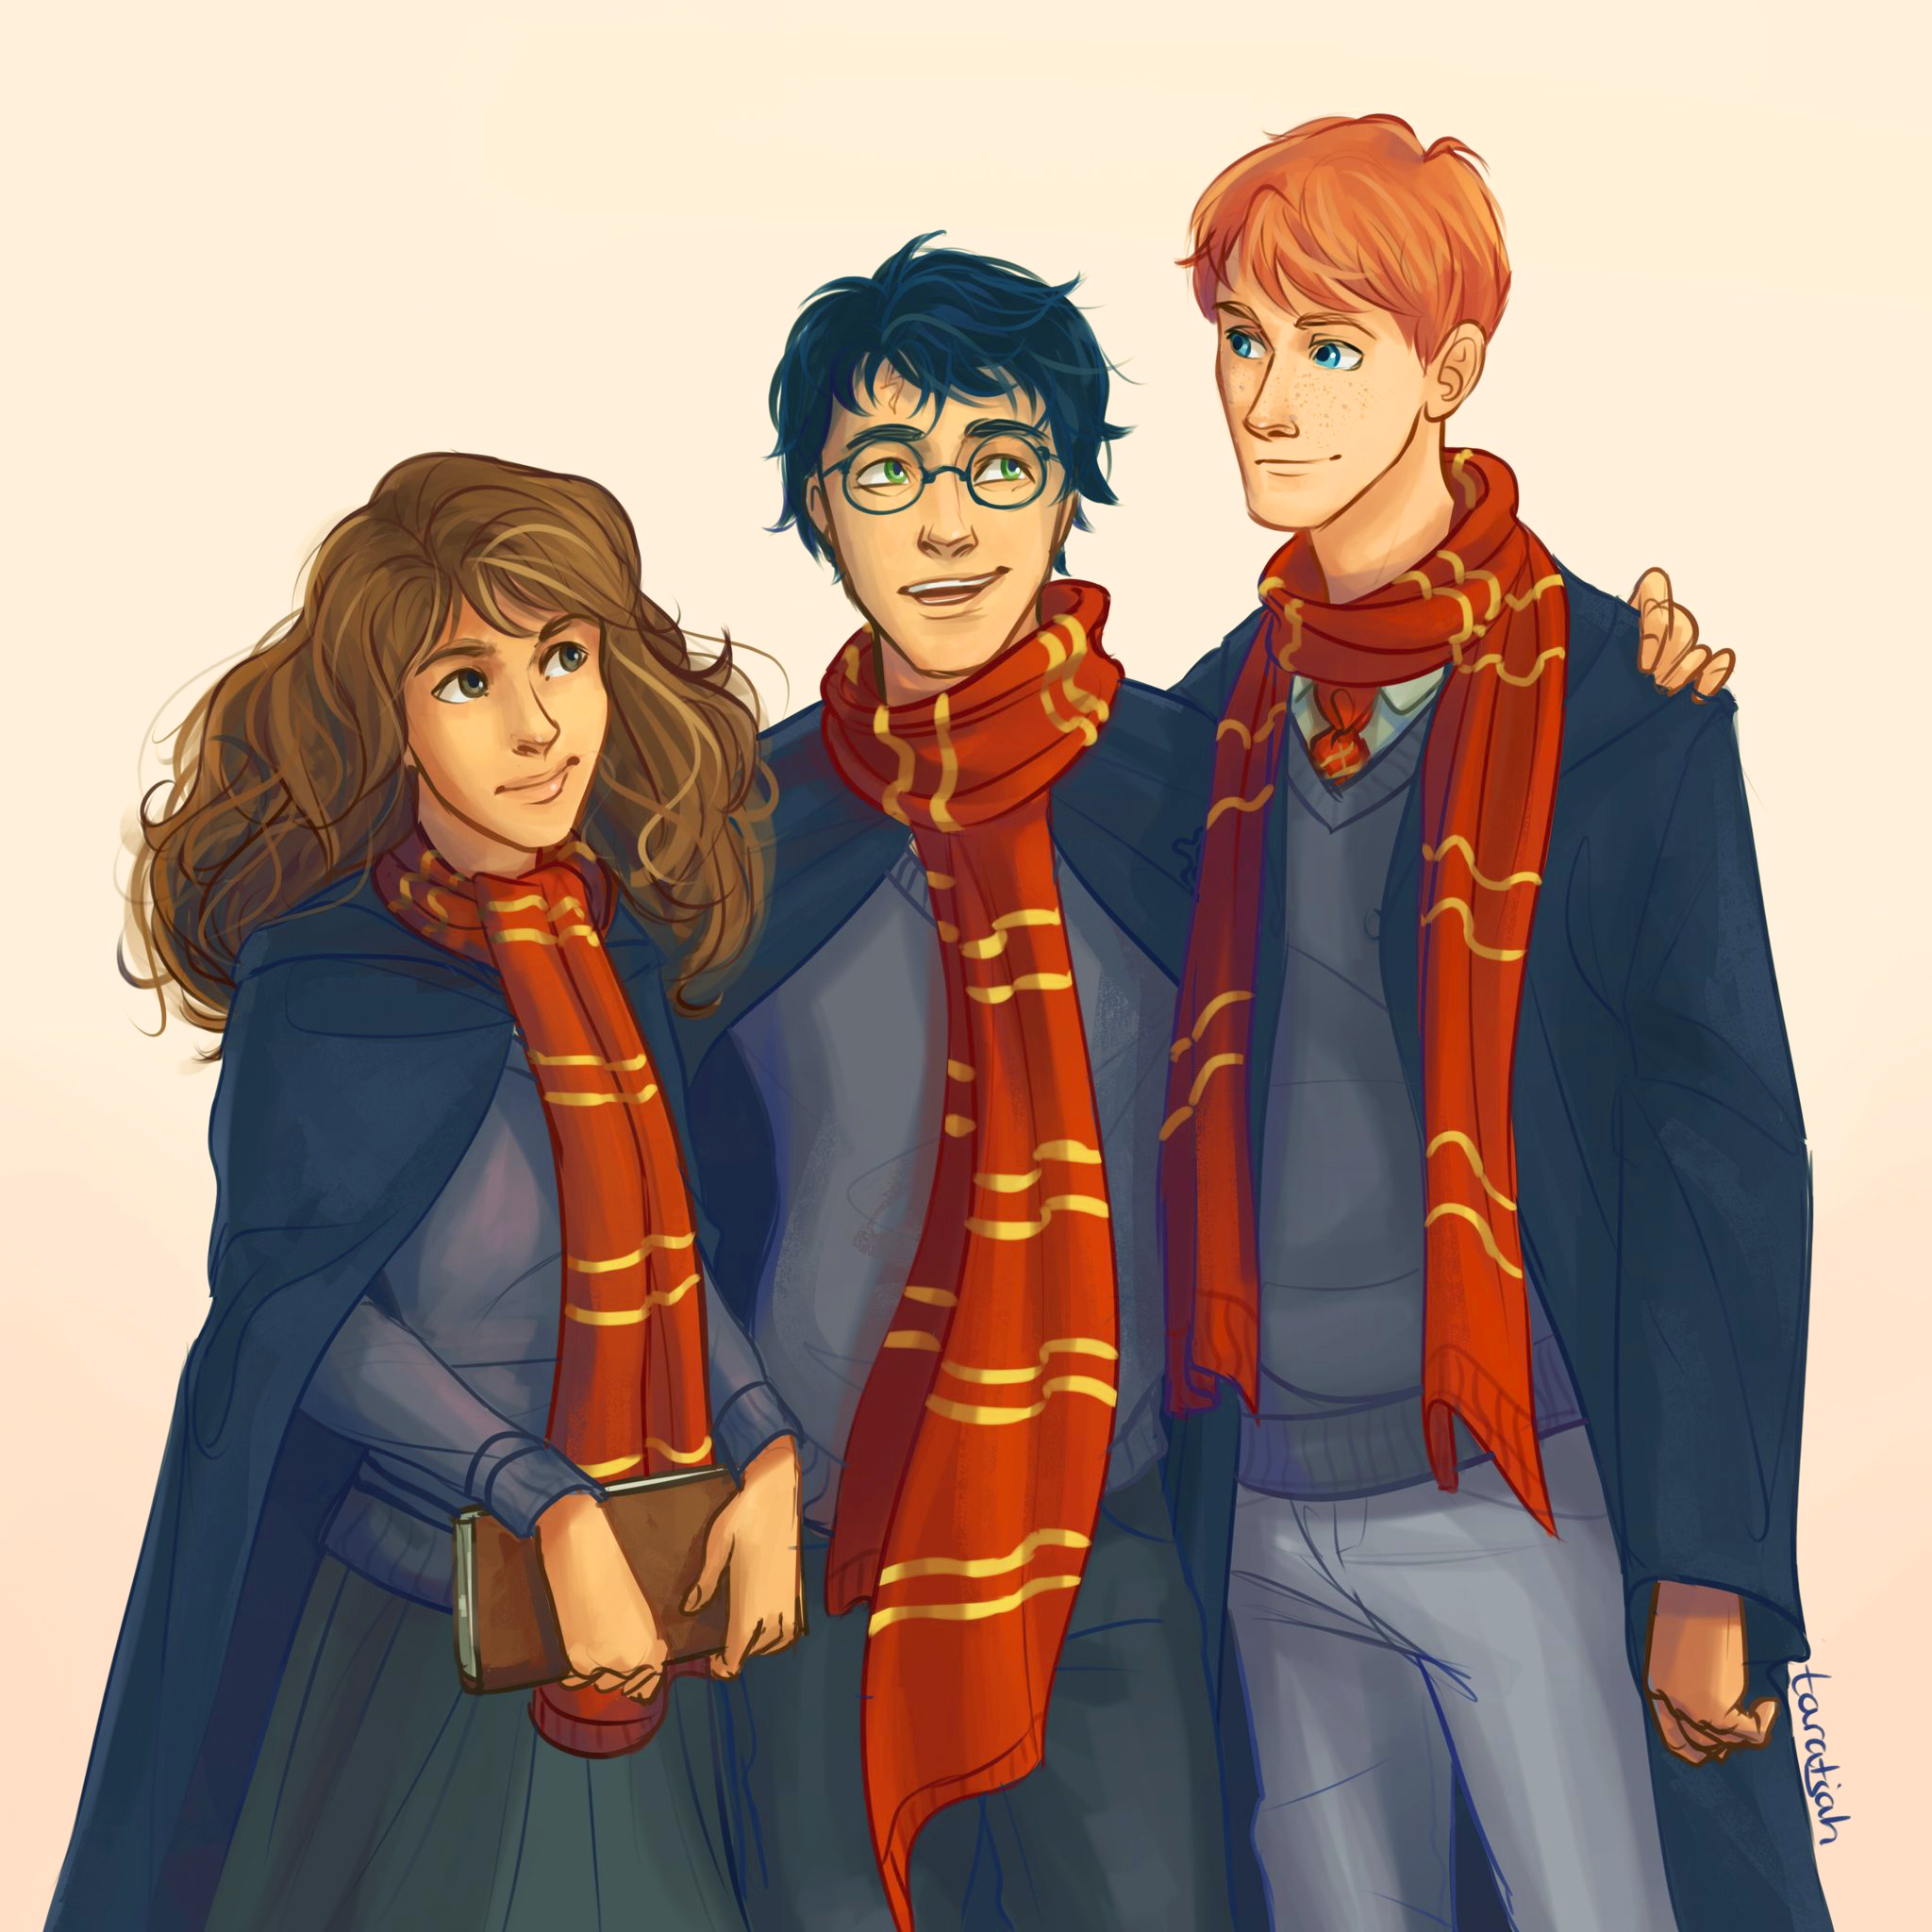 Pin By Areg Every On Harry Potter In 2020 Harry Potter Couples Harry Potter Artwork Harry Potter Fan Art